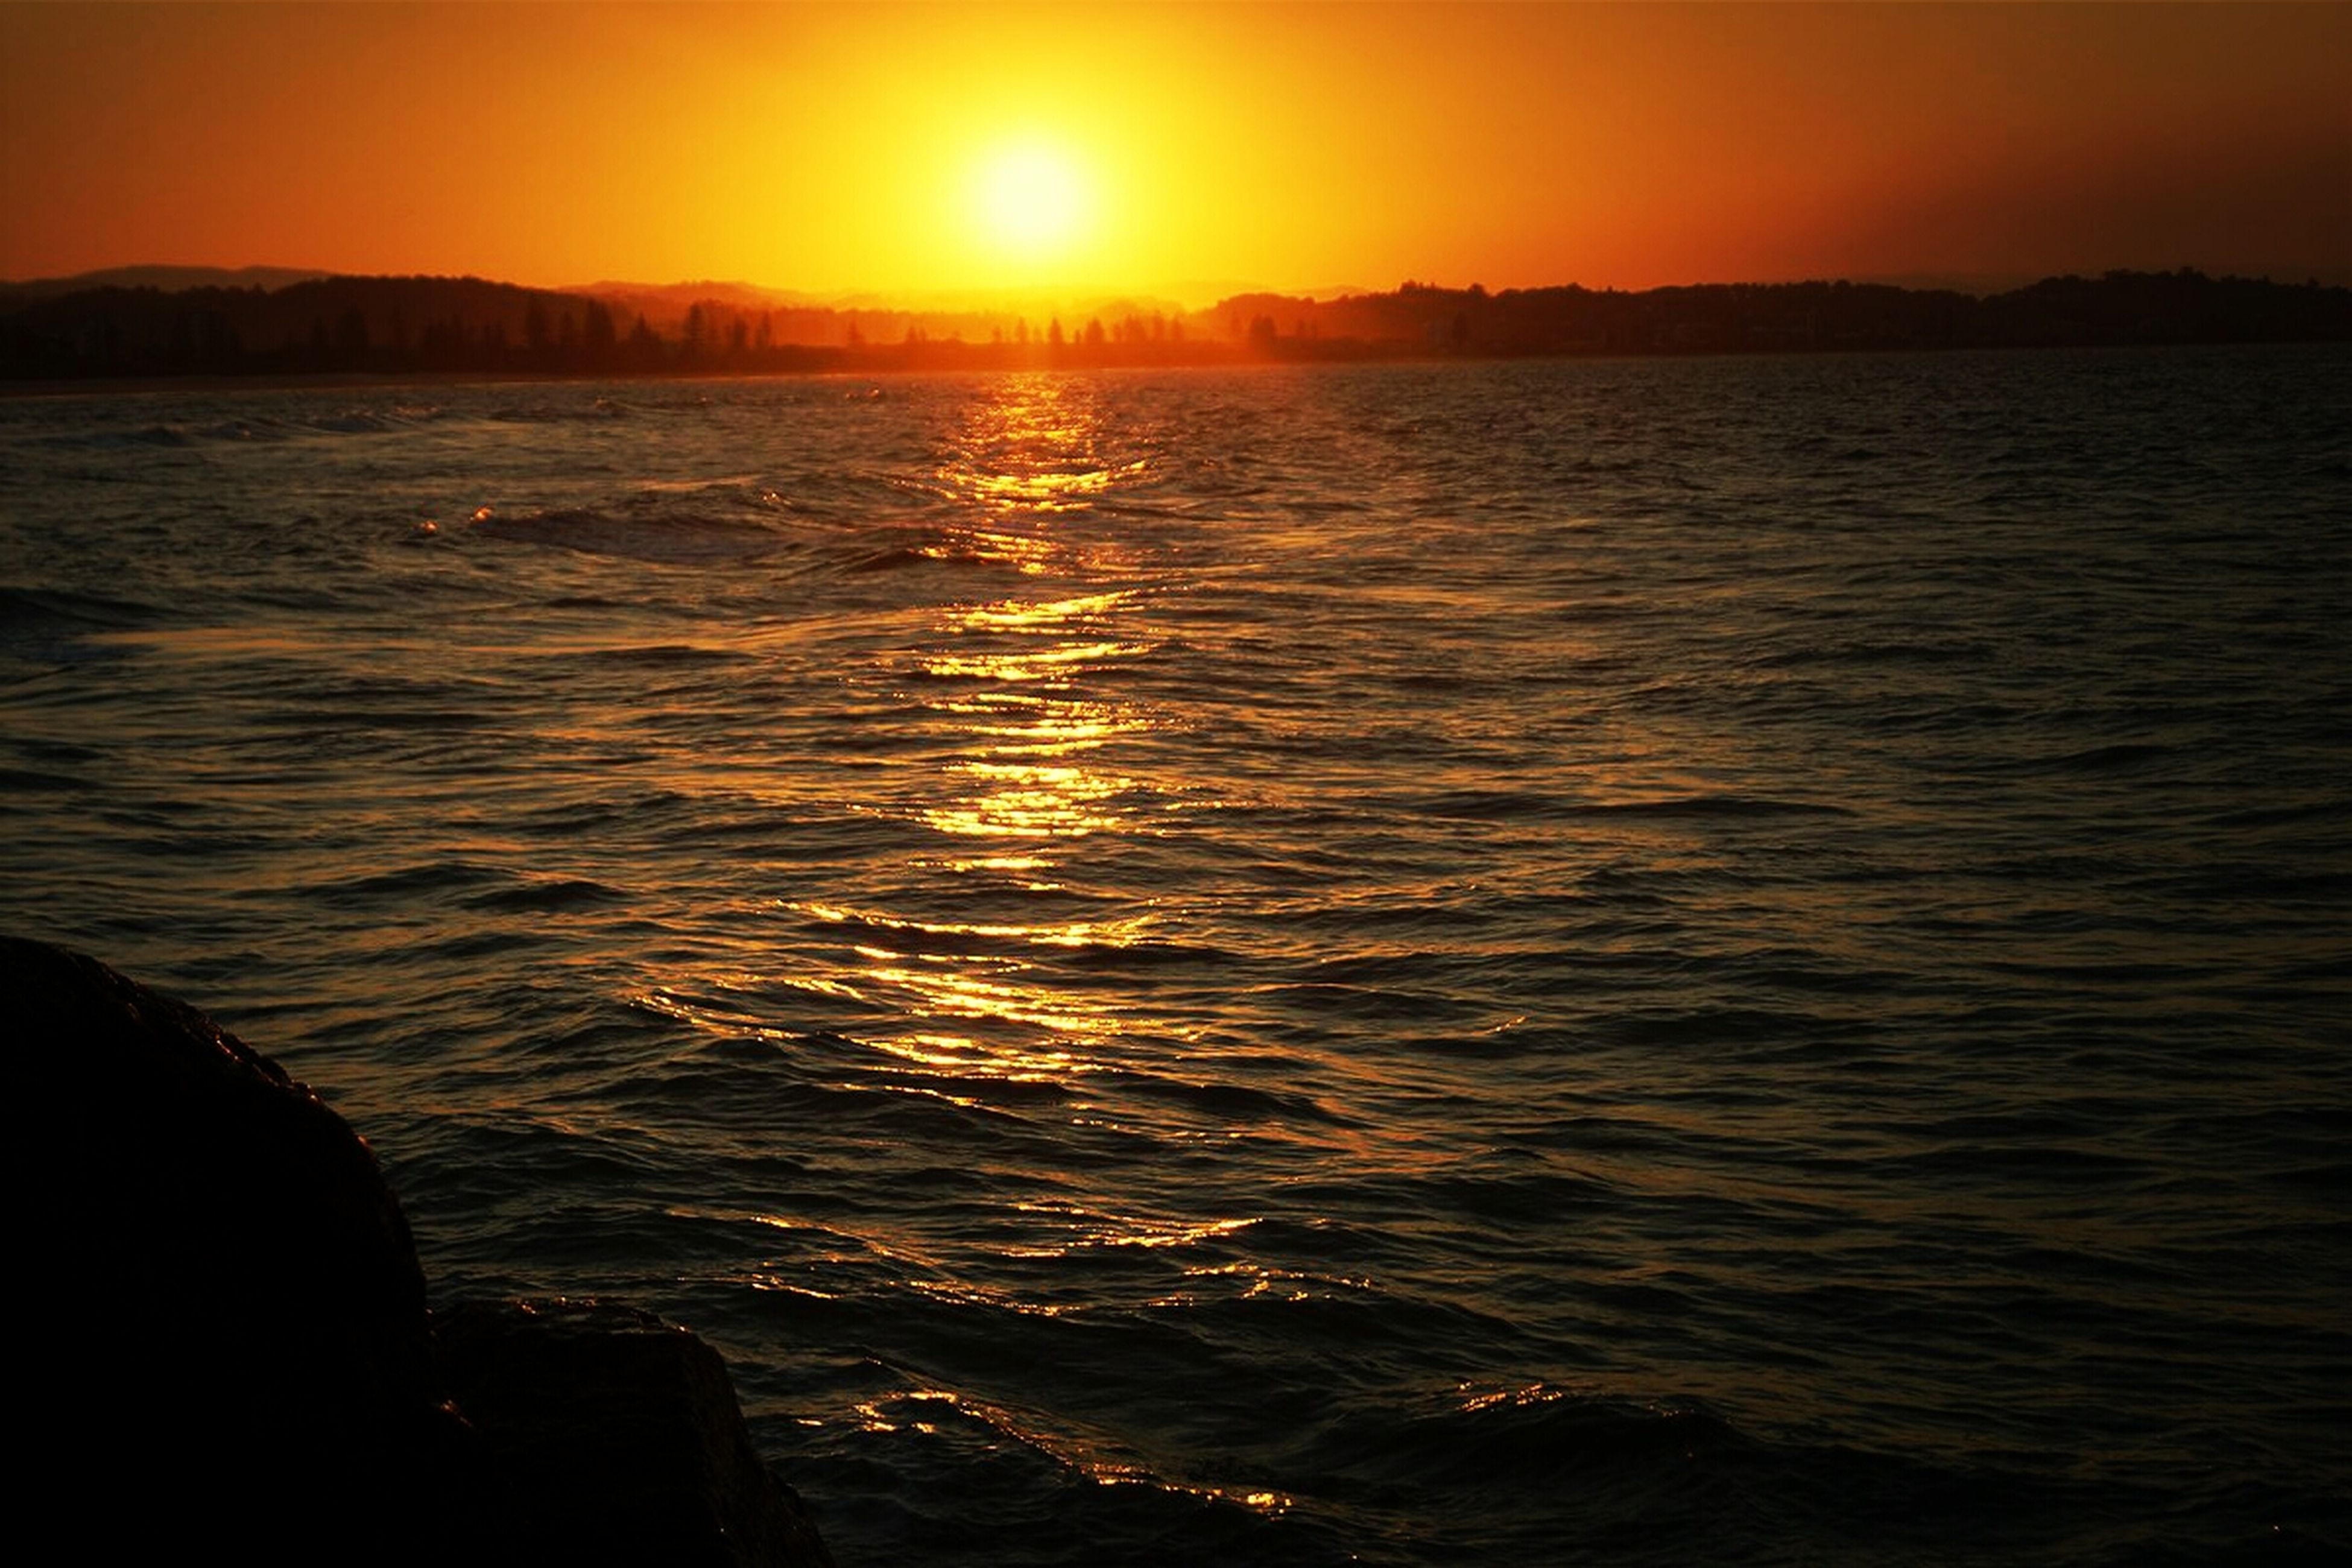 sunset, sun, water, scenics, orange color, tranquil scene, beauty in nature, tranquility, sea, reflection, silhouette, idyllic, sunlight, nature, sky, rippled, waterfront, sunbeam, lens flare, mountain